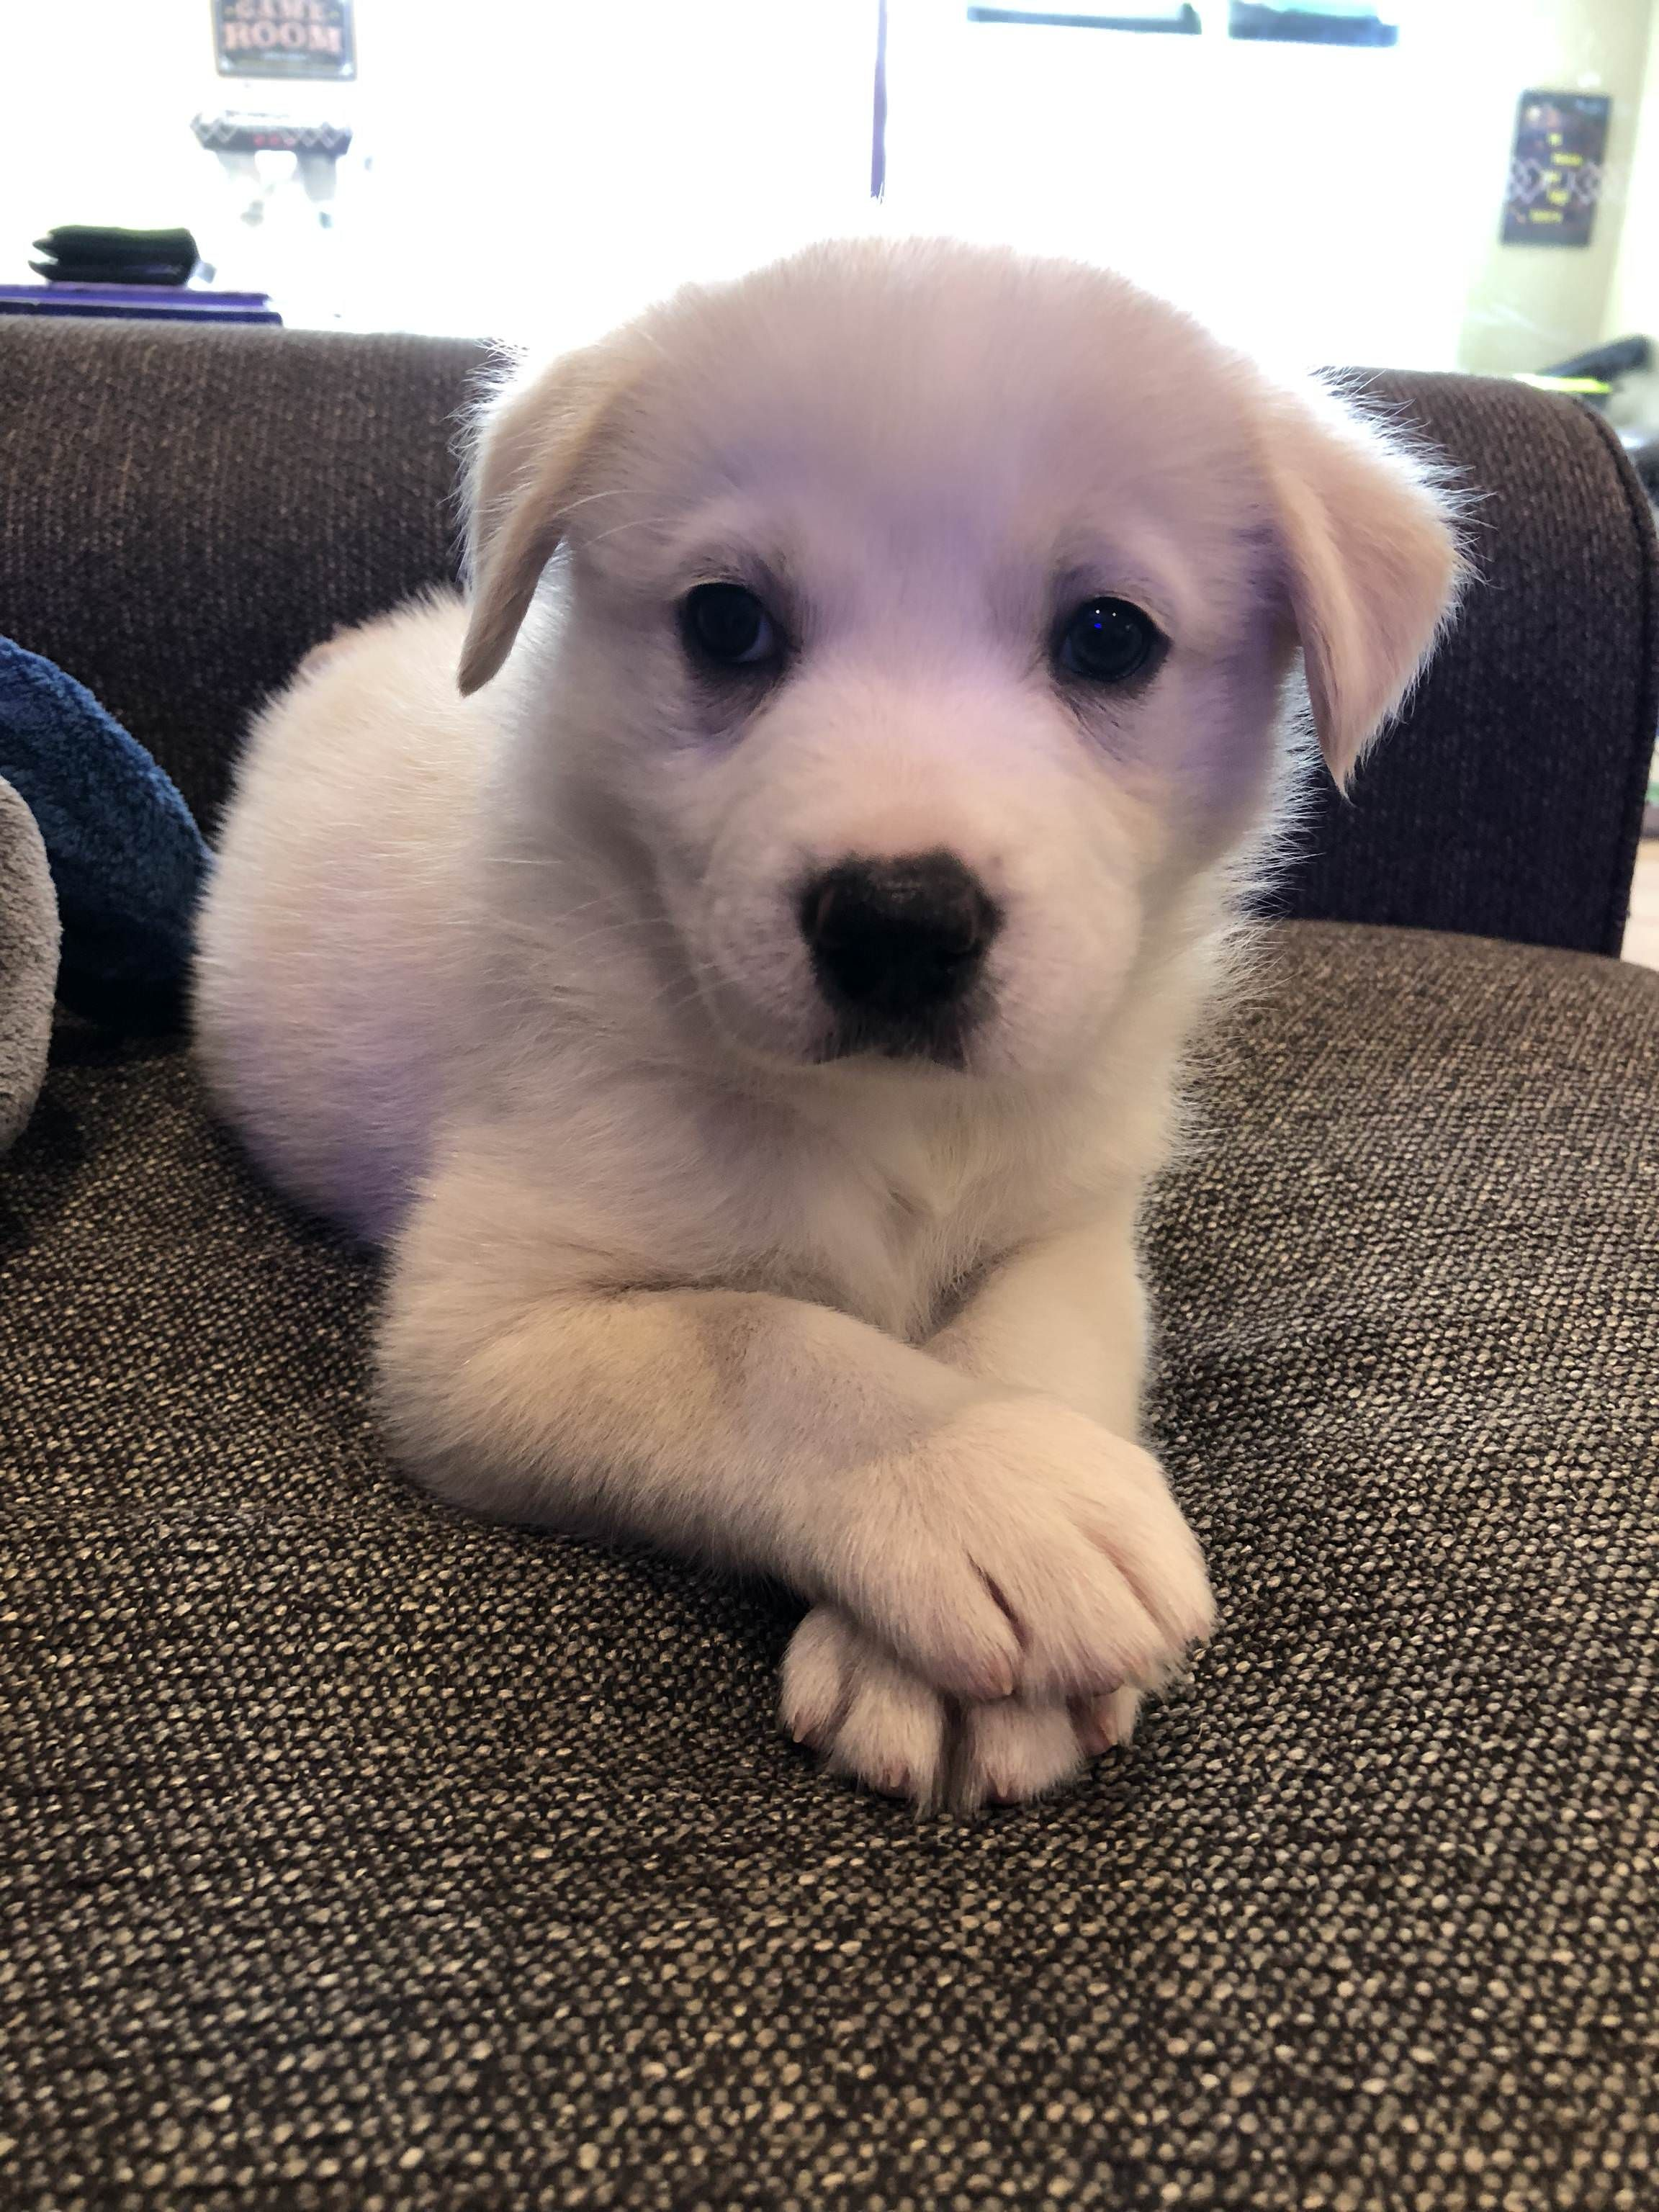 Husky Golden Retriever 6 Weeks Puppies Dogs Pets Puppy Dog